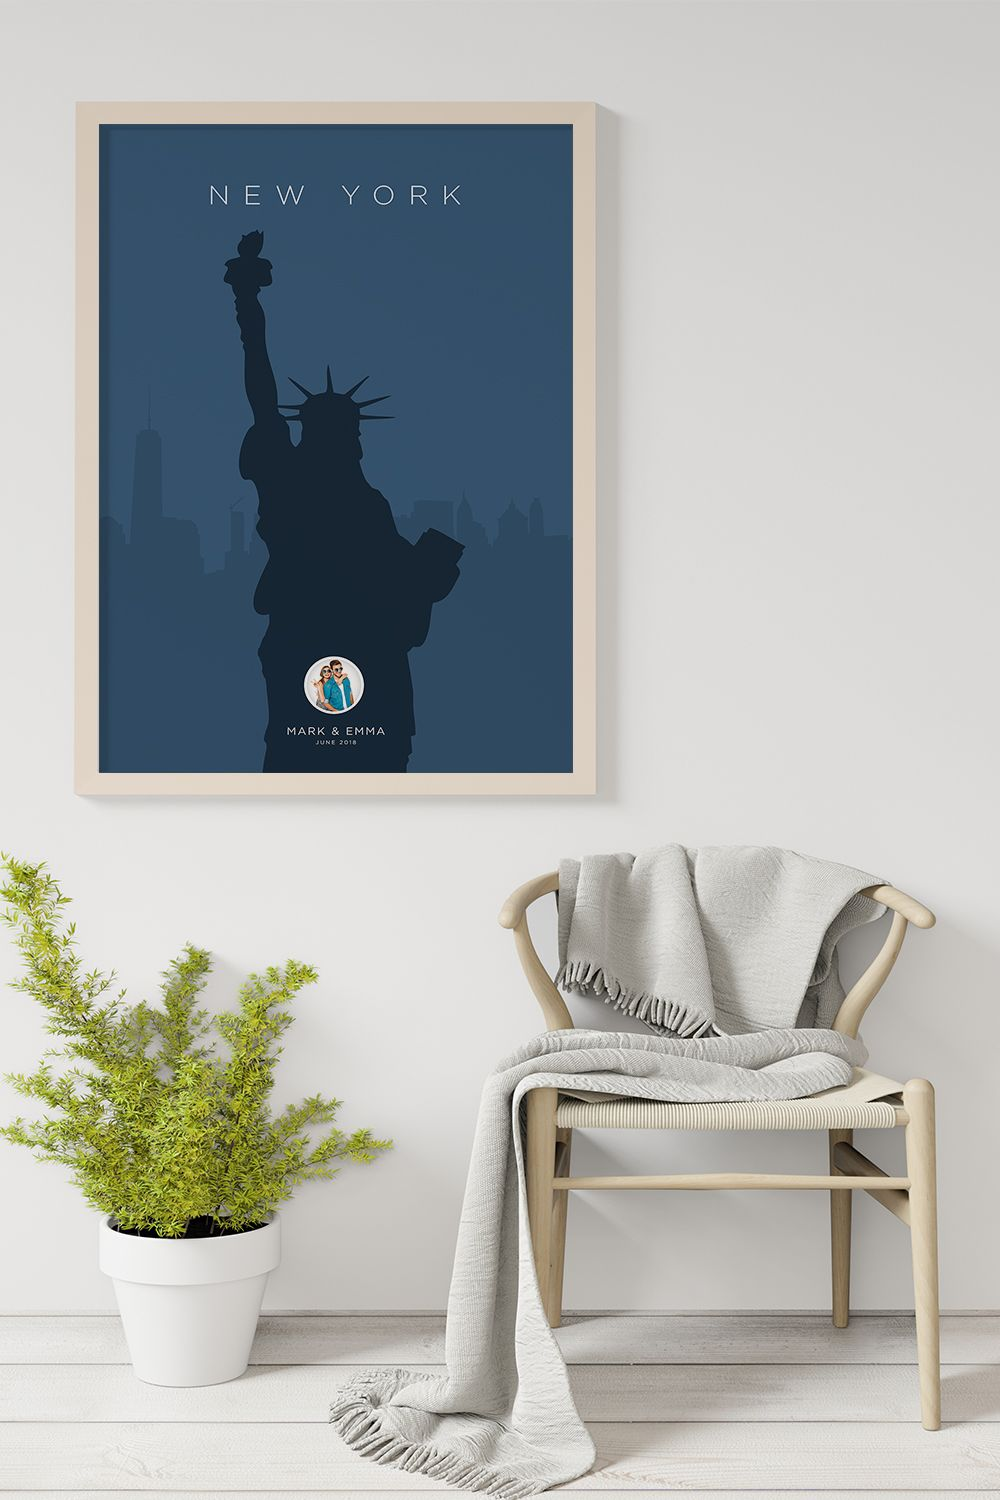 New York Statue of Liberty Landmark Personalized Poster. Each personalised print that we create is truly unique and is customised just for you. No one will ever have the same poster that we design for you! Simply, add your names, month of the travel, photo and choose your favourite colours. #travelposters #travelprint #citymap #travelideas #traveldesign #traveldreamseekers #artprints #travelguides #wallartprint #mydomainetravels #newyorkposter #personalizedposter #travelnewyorkcity